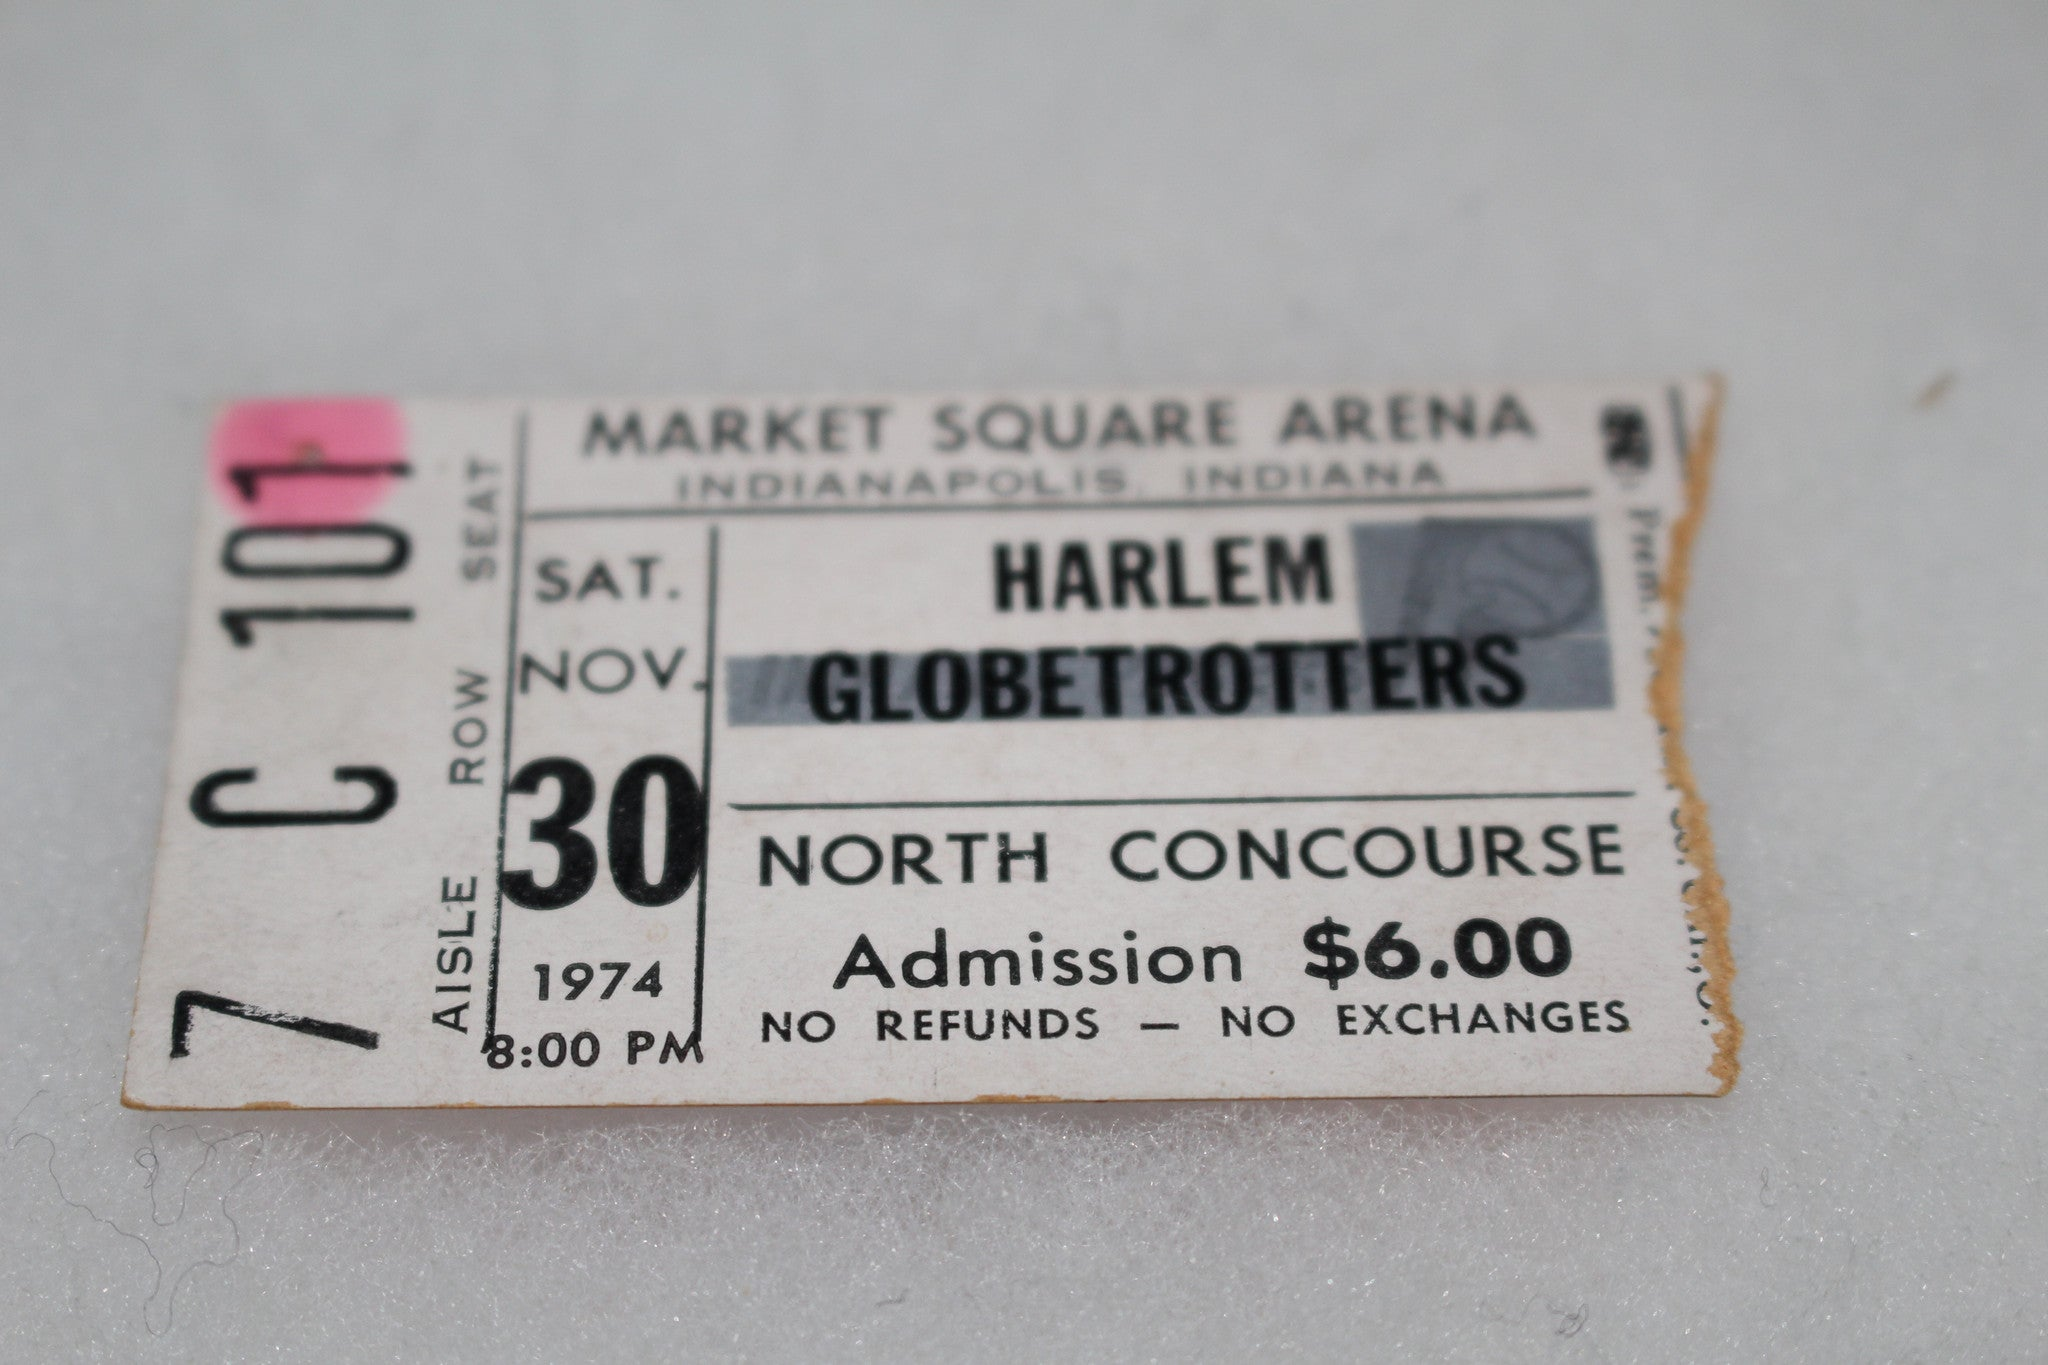 1974 Harlem Globetrotters Ticket Stub - Vintage Indy Sports